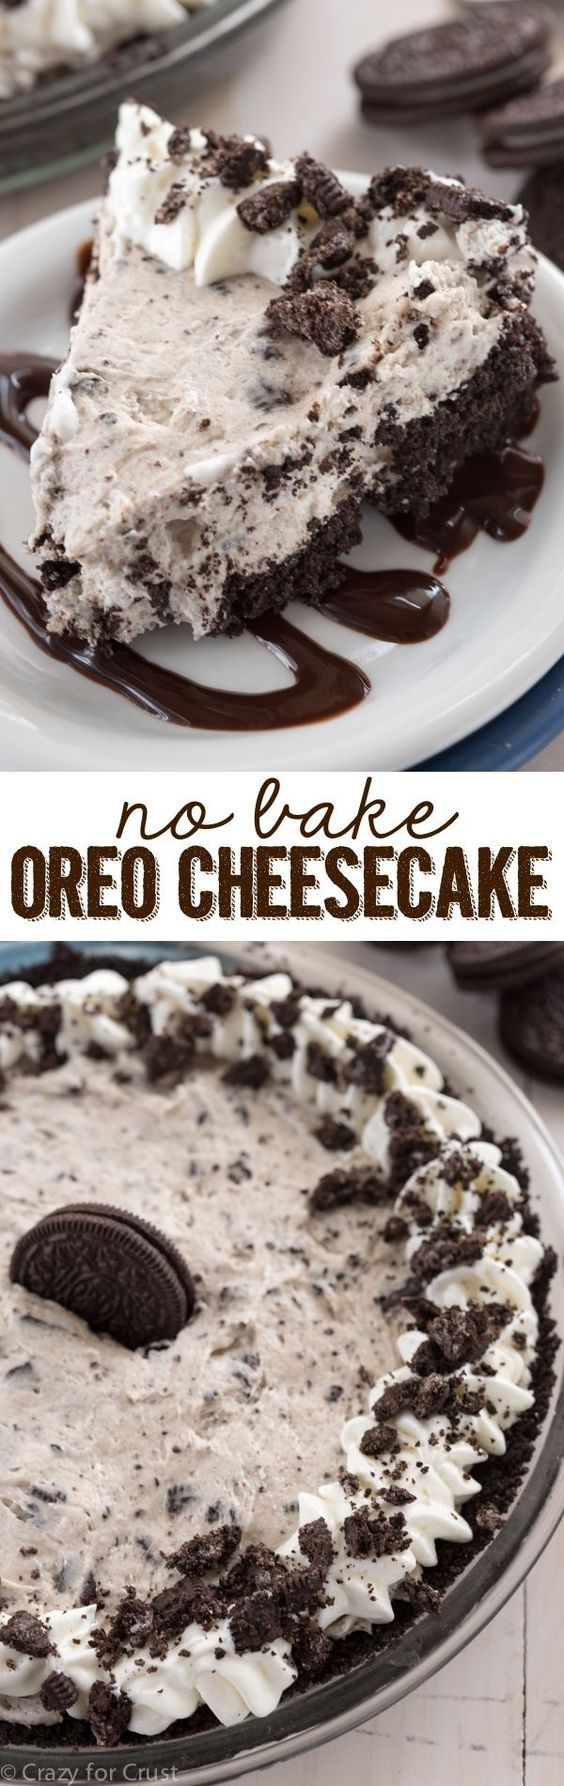 This No Bake Oreo Cheesecake is easy, fast, foolproof and filled with Oreos!! It's the perfect summer recipe! (Oreo Cheese Cake)